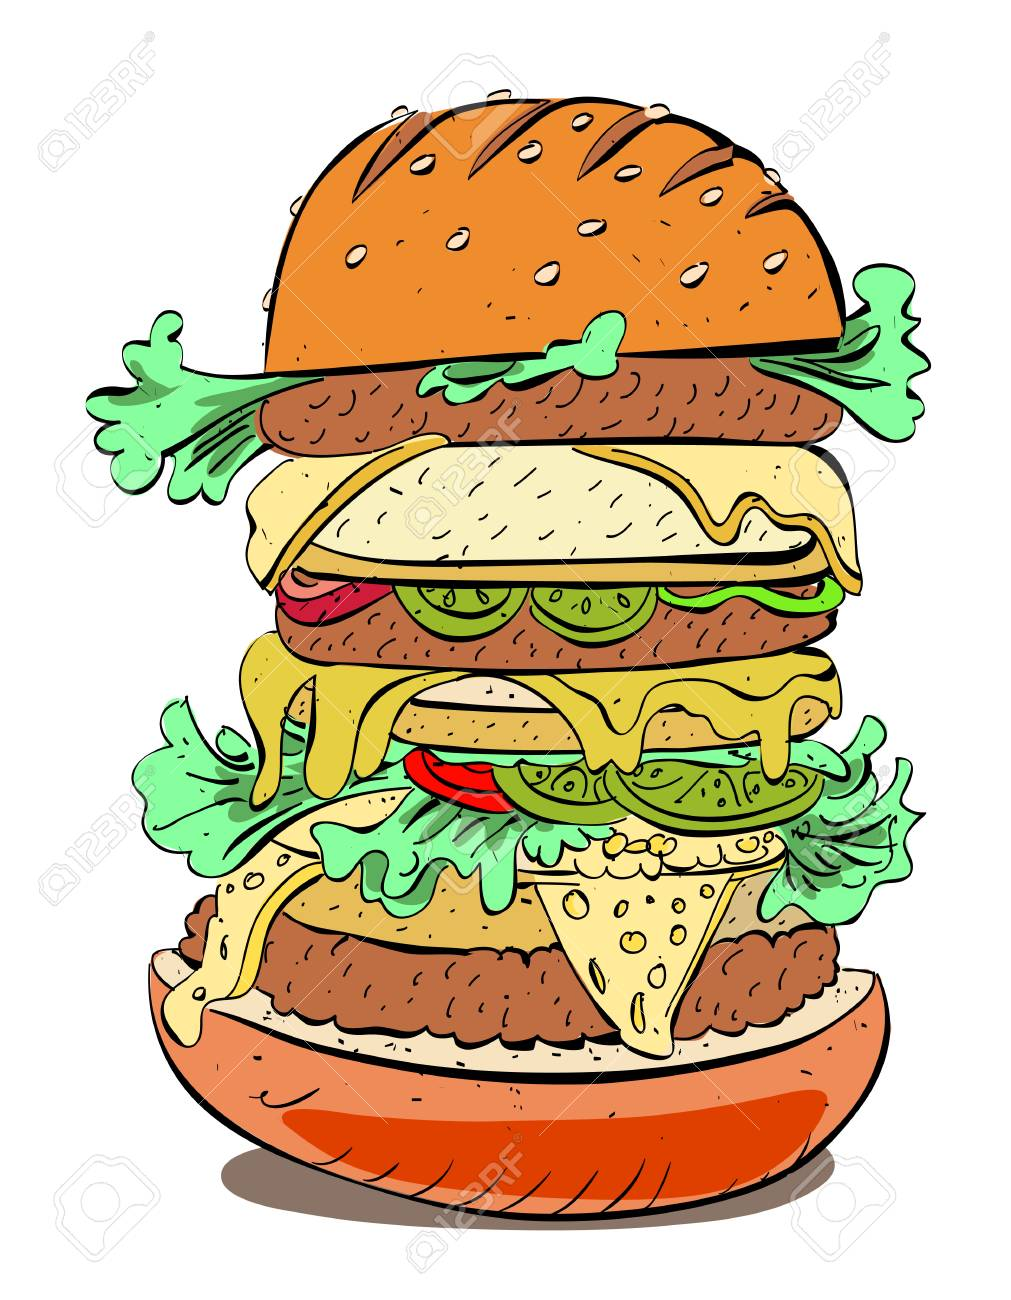 cartoon image of huge sandwich royalty free cliparts vectors and stock illustration image 76258828 cartoon image of huge sandwich